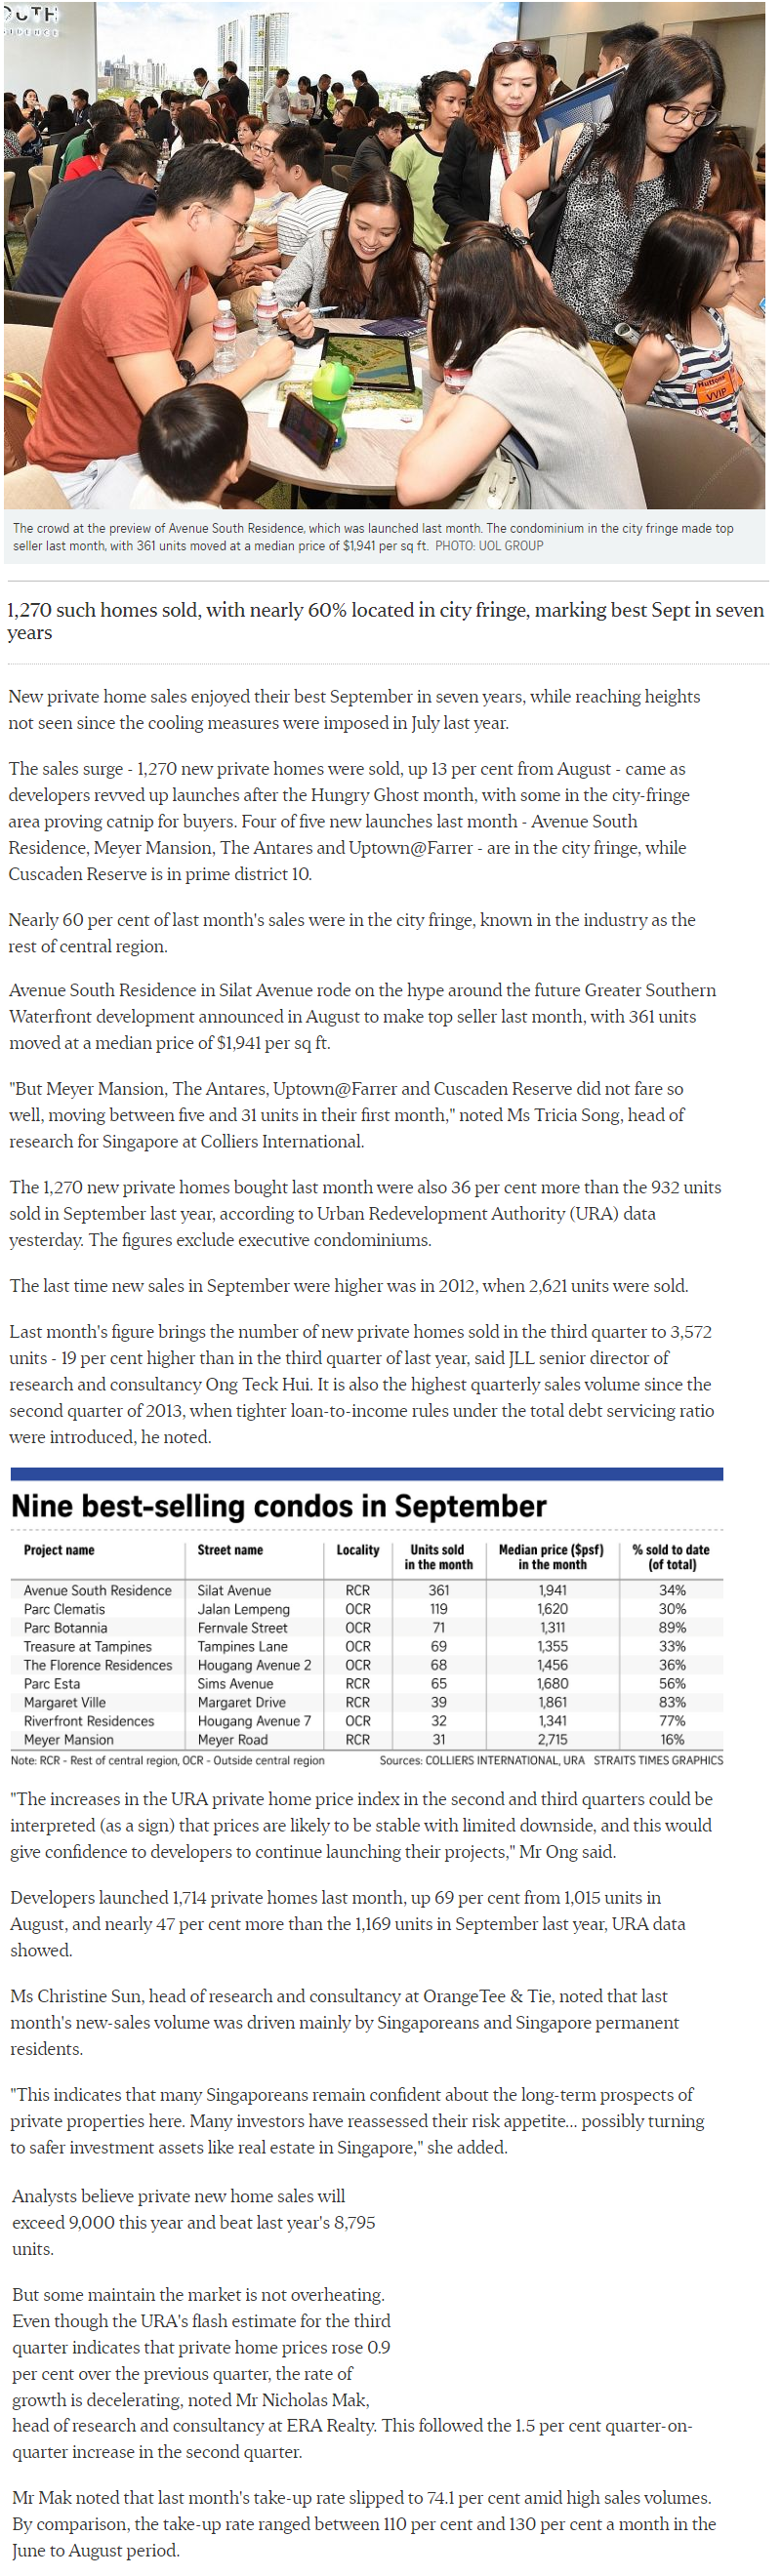 Park Nova - New private Home Sales Hit A Hight In September